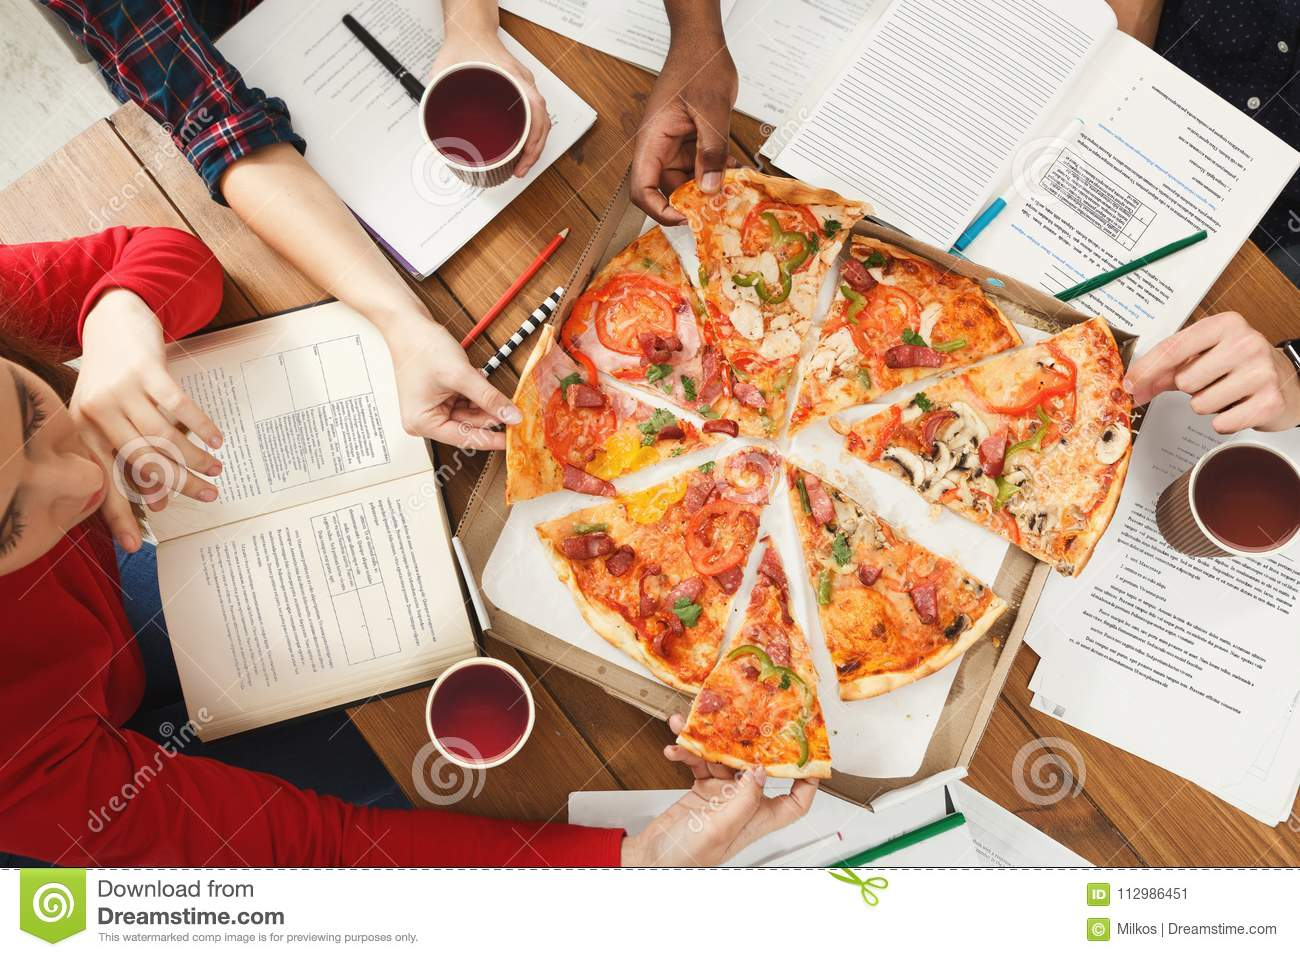 Students learning and eating pizza